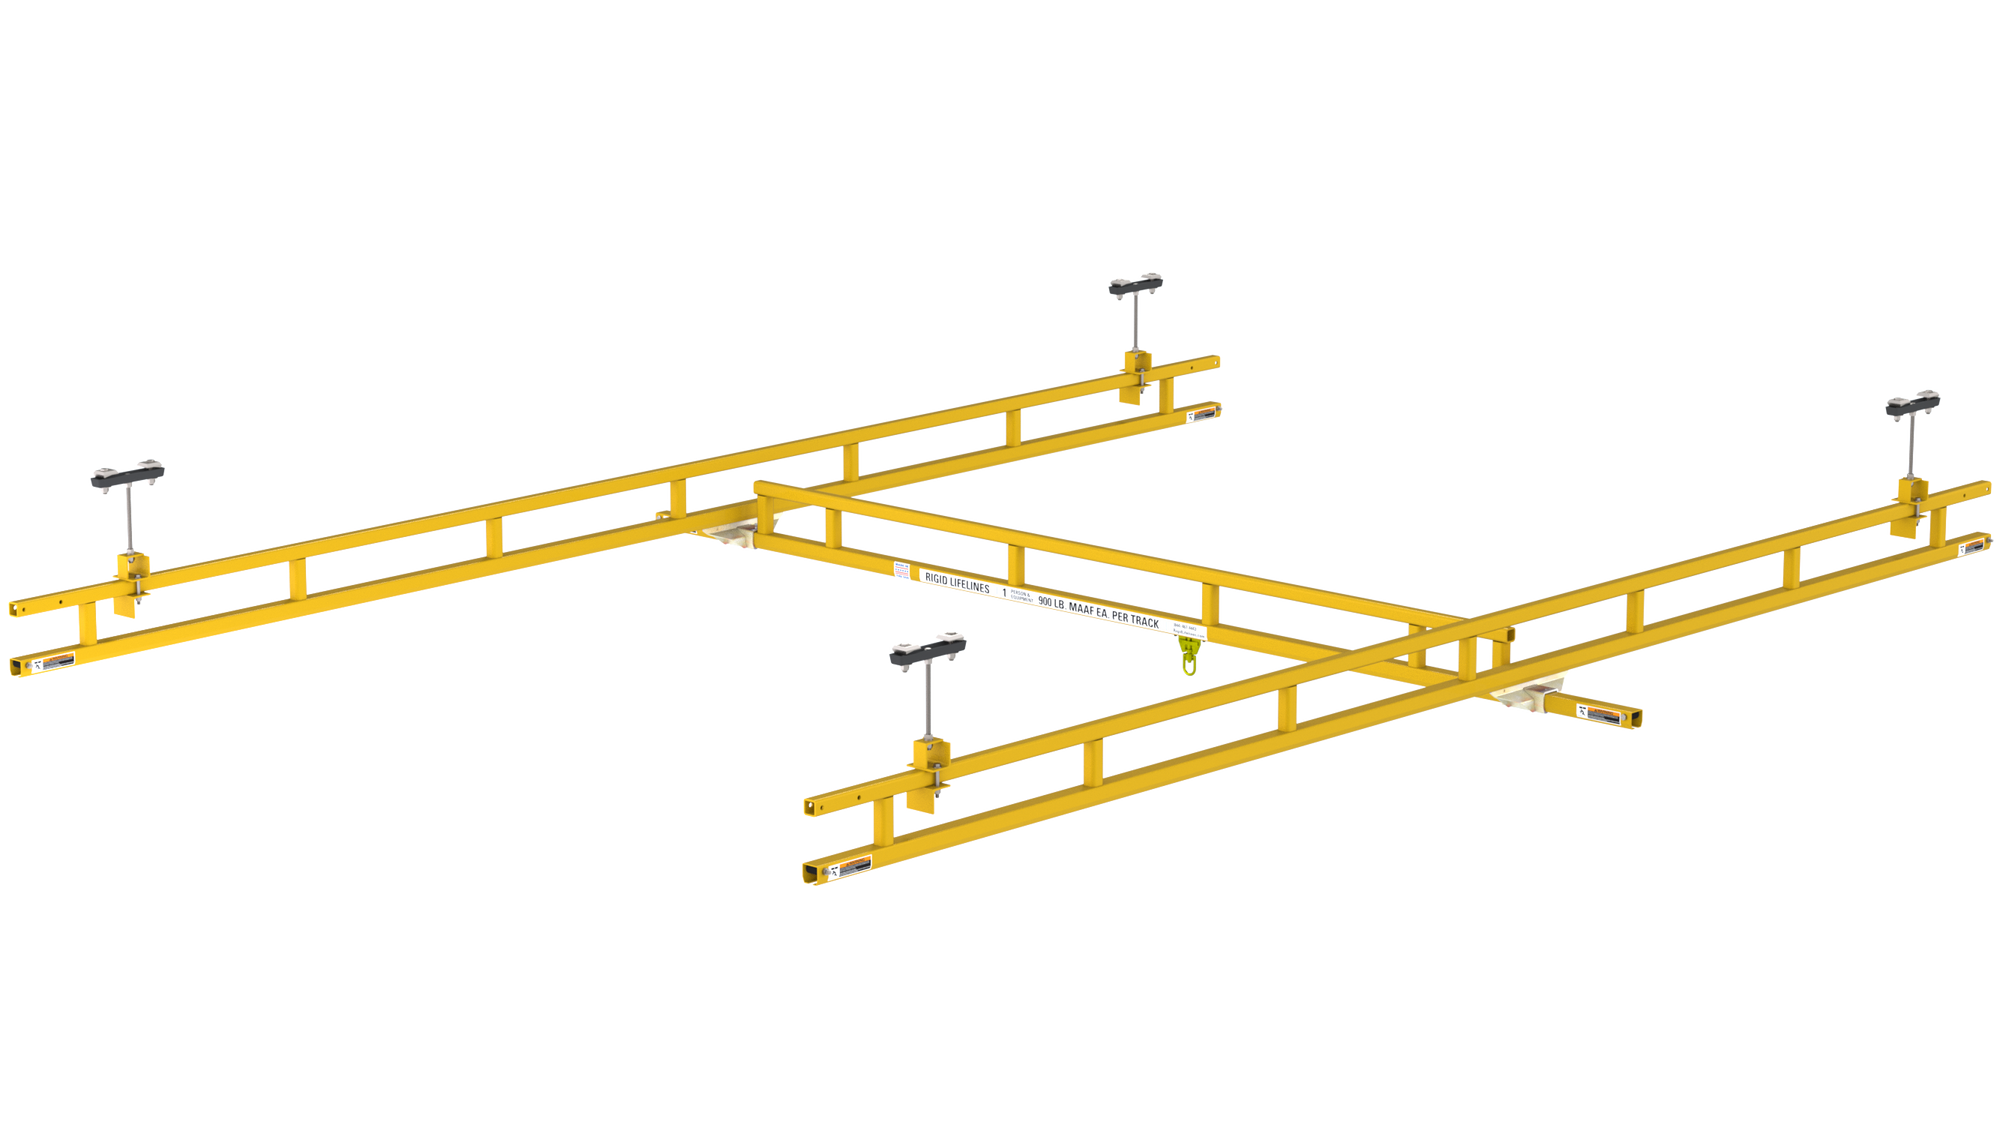 Ceiling Mount Traveling Bridge With 20' Track Support Spacing